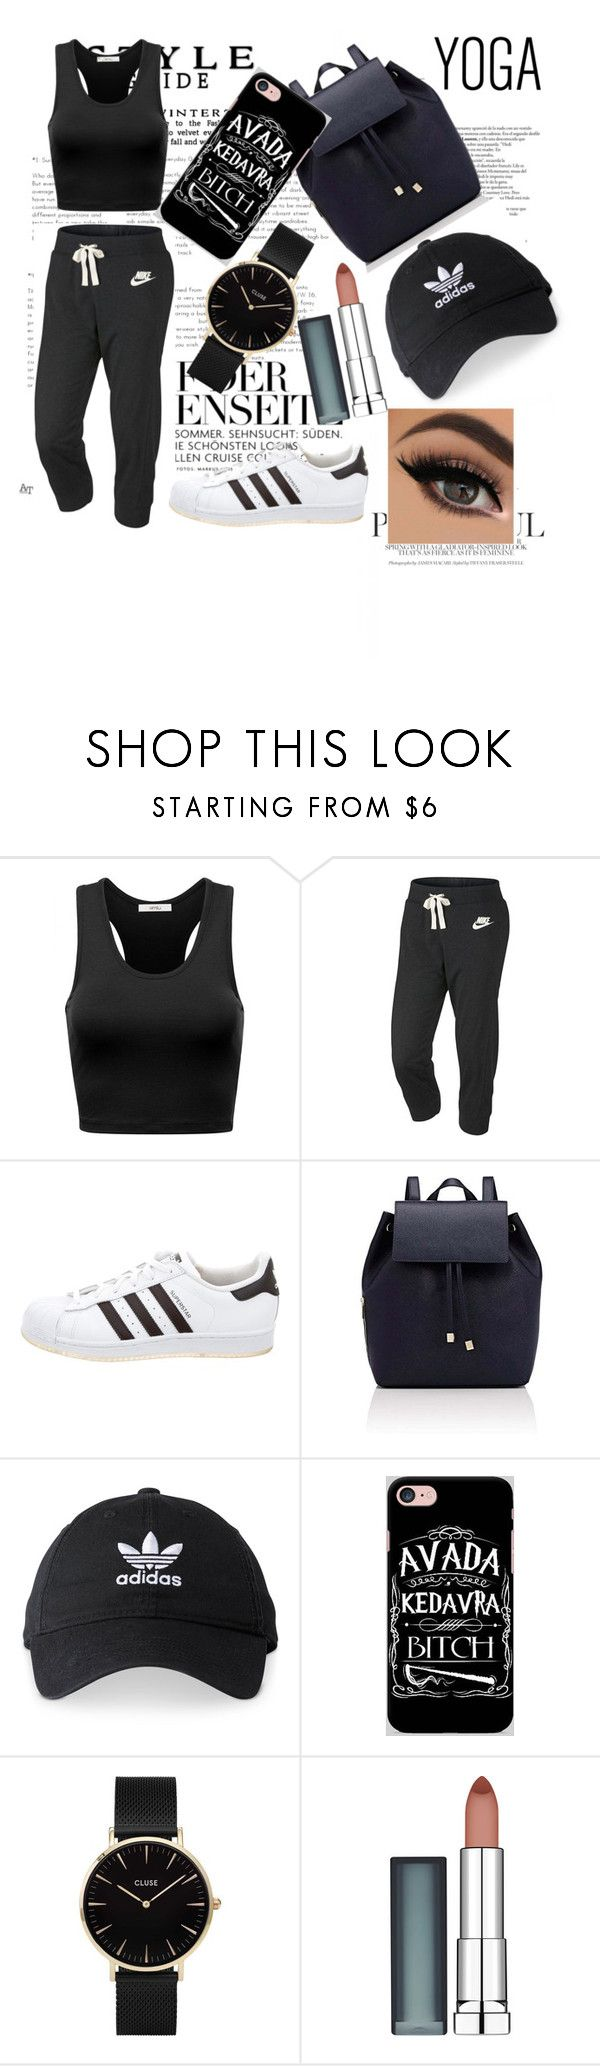 """""""all black"""" by denissek ❤ liked on Polyvore featuring NIKE, adidas, Barneys New York, Samsung, CLUSE and Maybelline"""